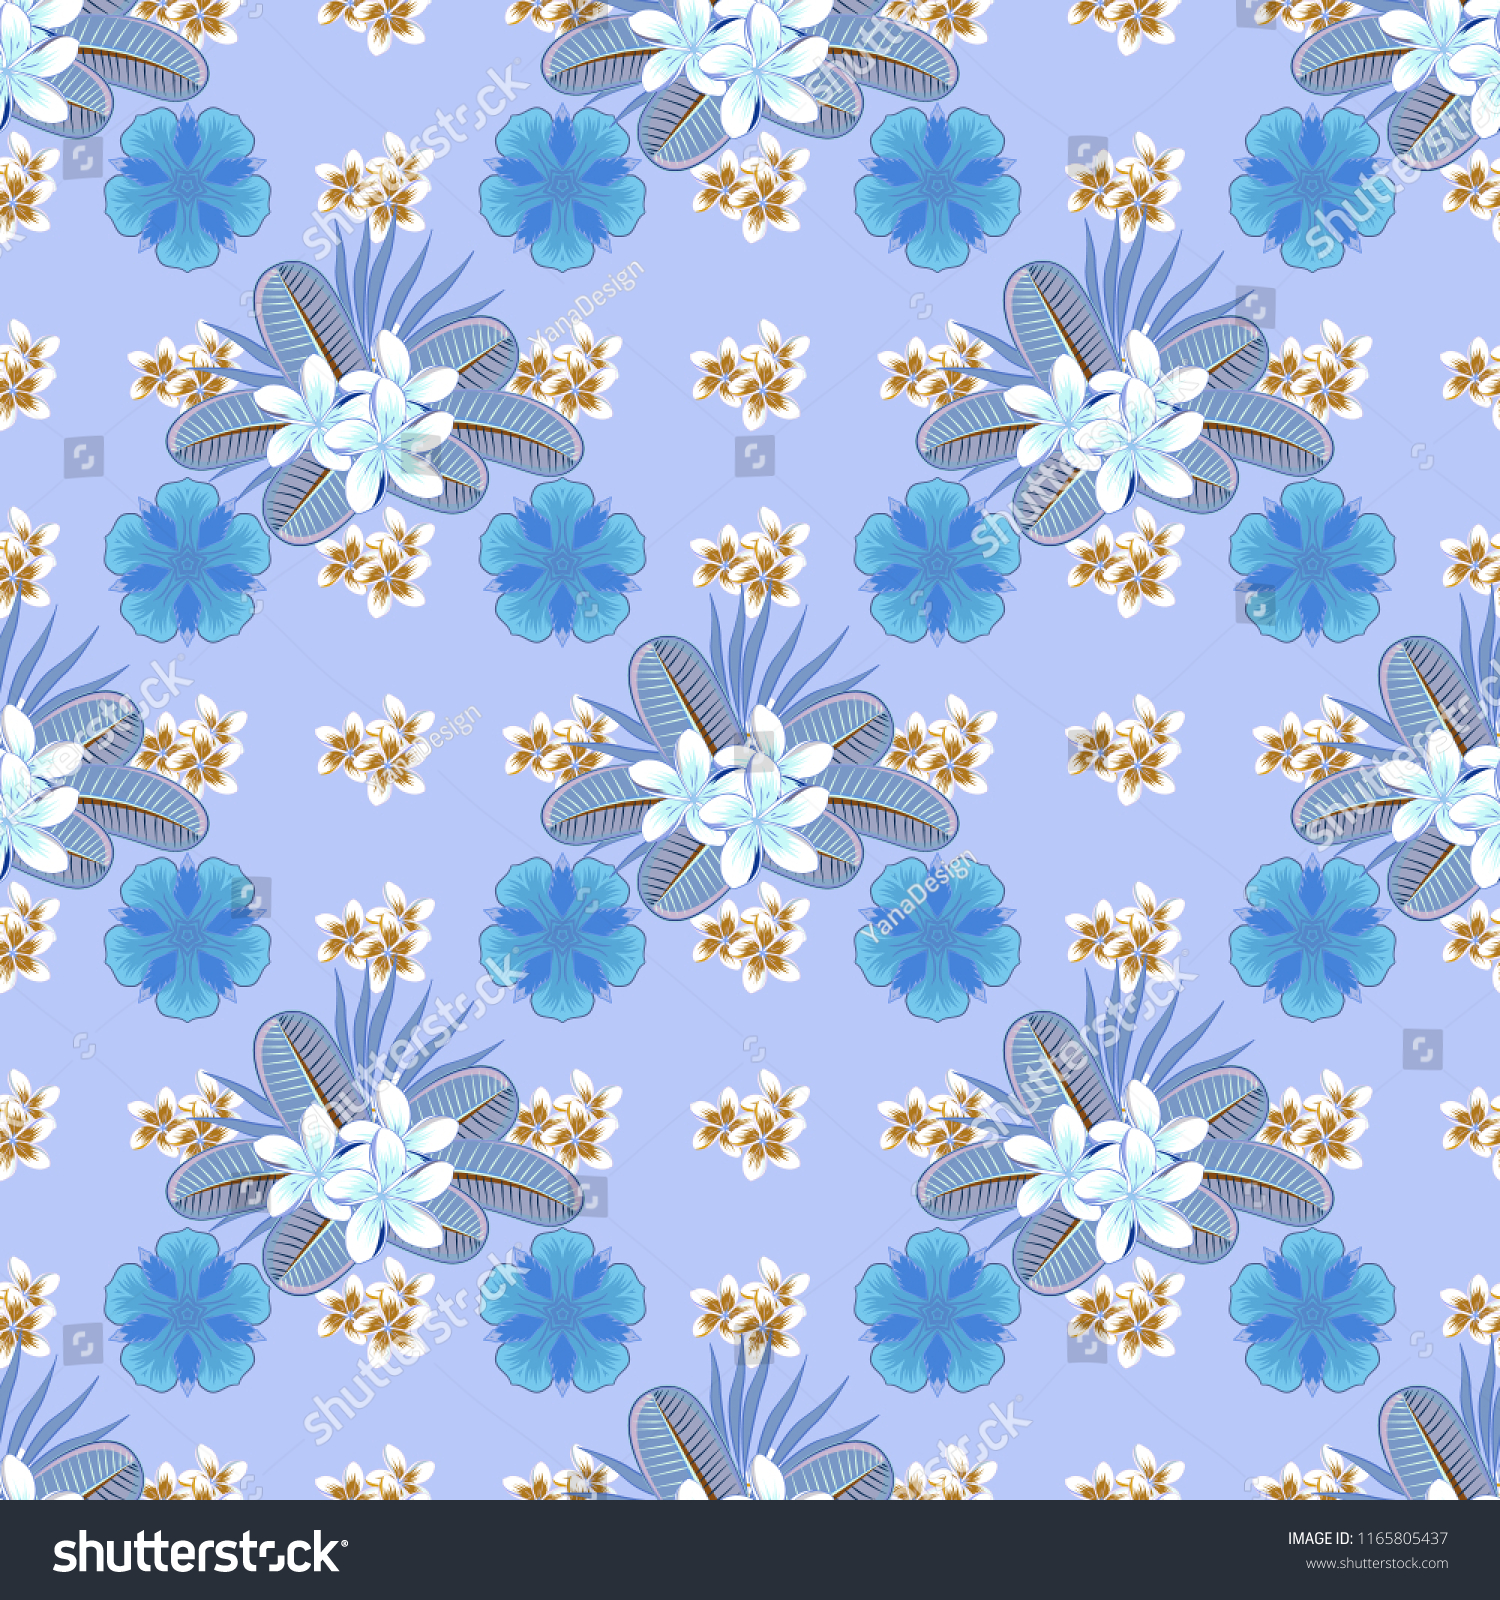 Seamless Floral Wallpaper Blue White Brown Stock Vector Royalty